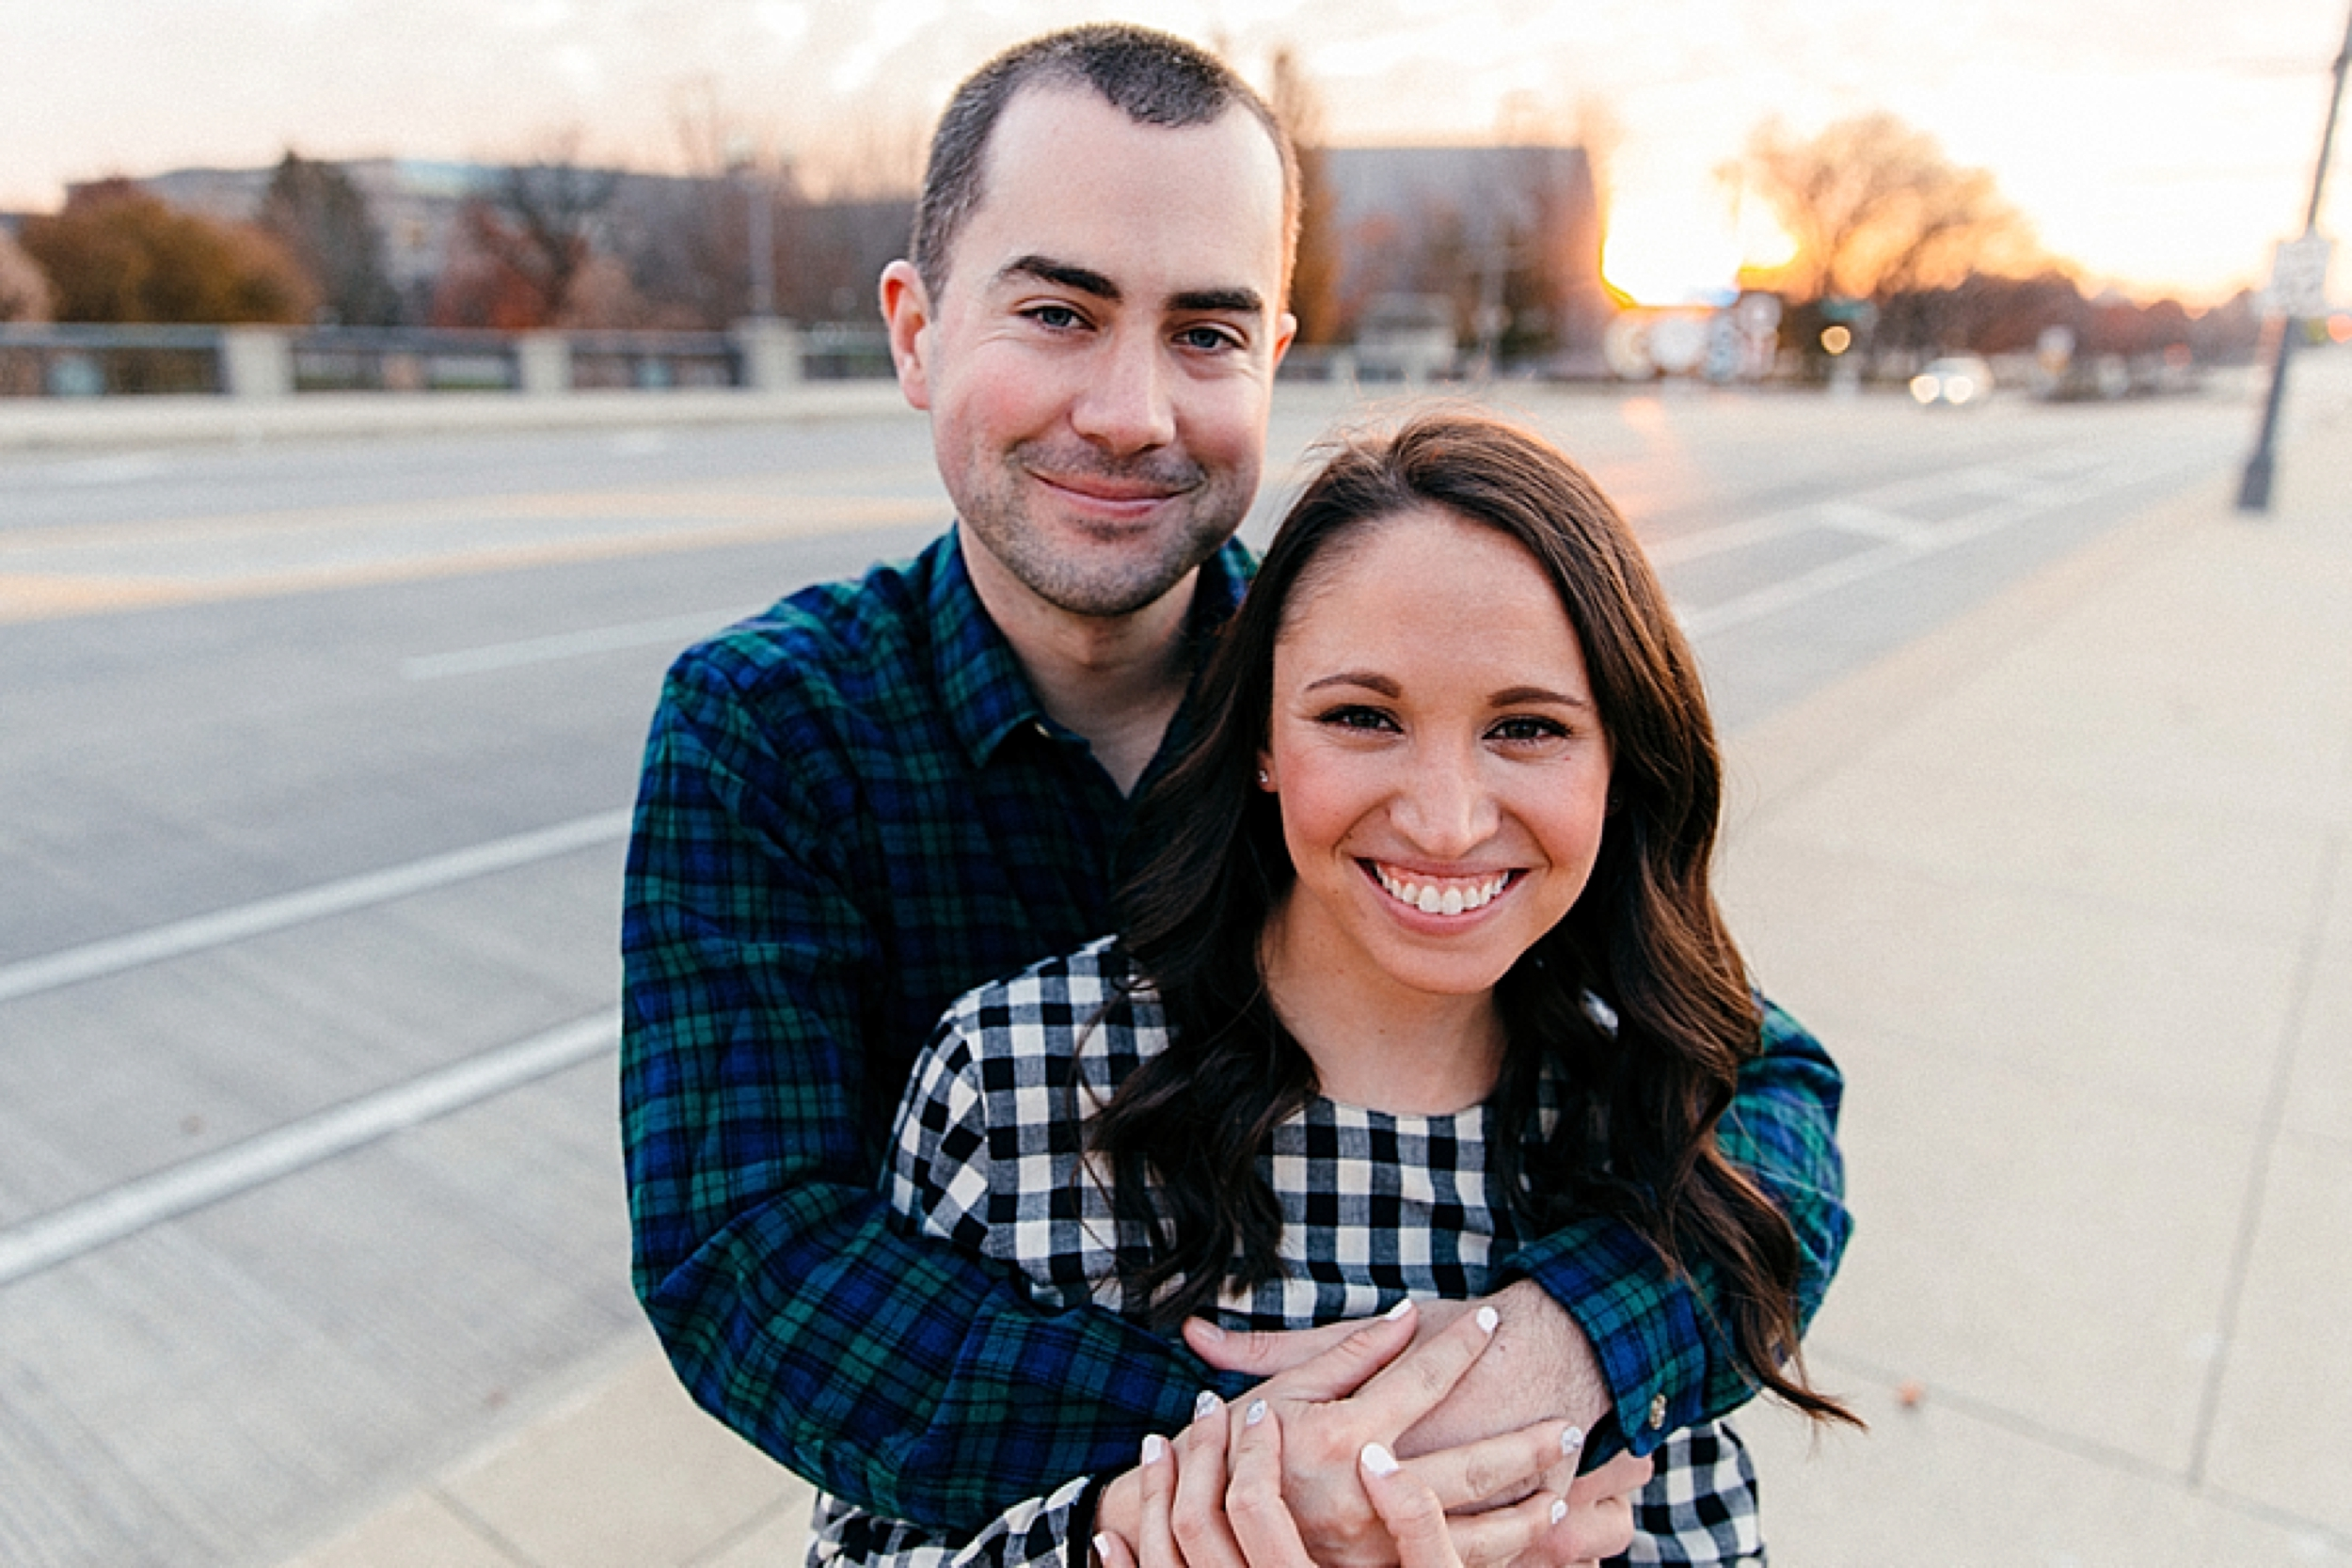 midwest-michigan-indiana-engagement-and-wedding-photographer-session-in-columbus-ohio_0008.jpg